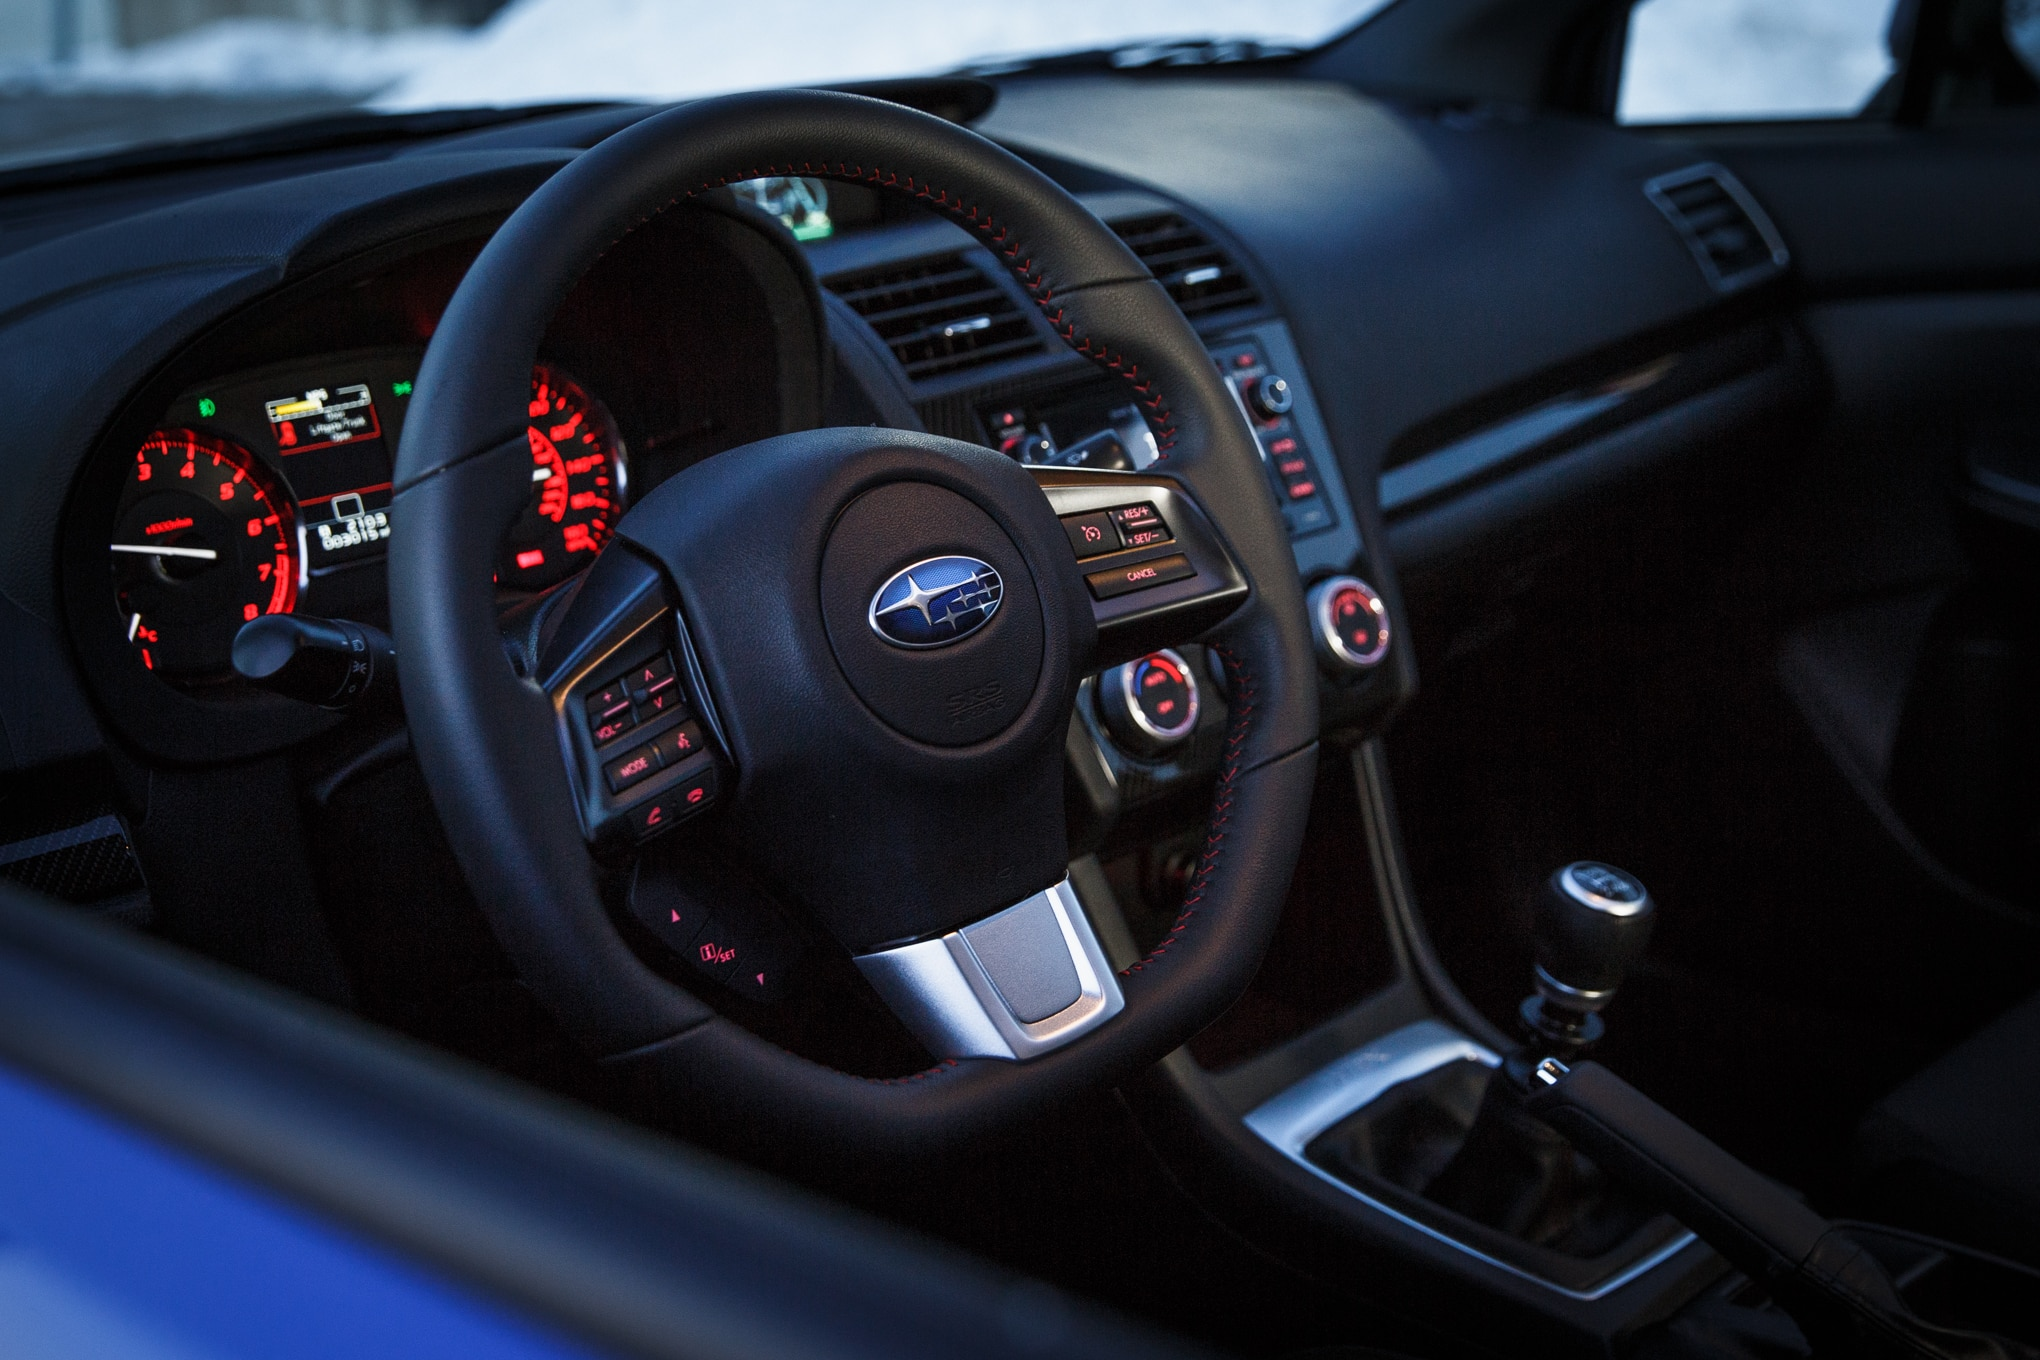 Wrx Cvt >> 2015 Subaru WRX: Around the Block - Automobile Magazine